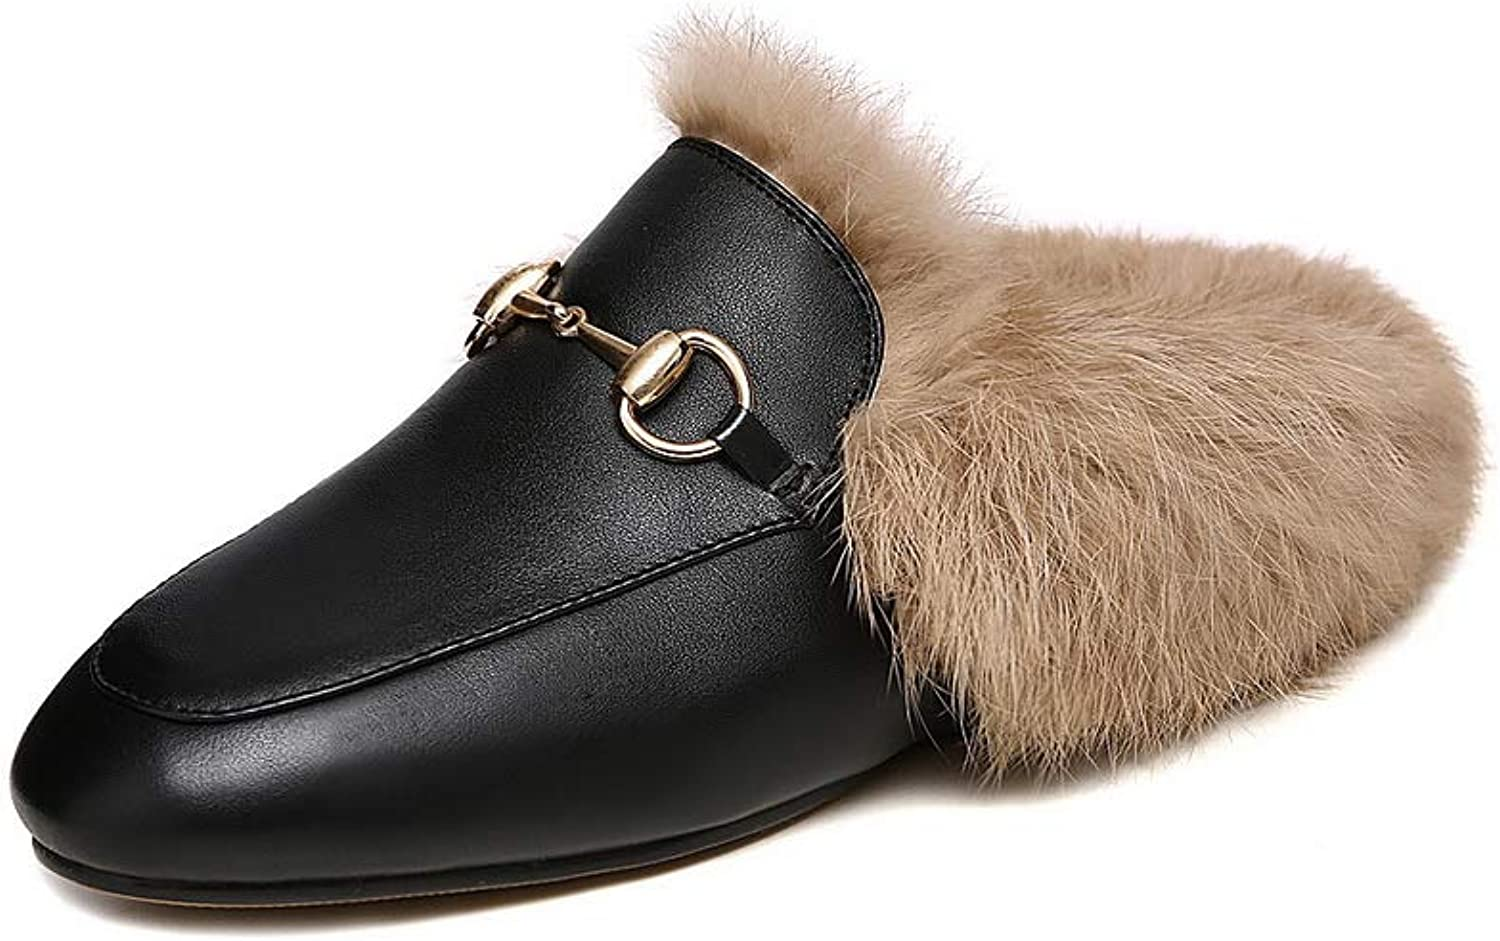 AN Womens Metal Buckles Fur Collar Cow Leather Loafers shoes DGU00997